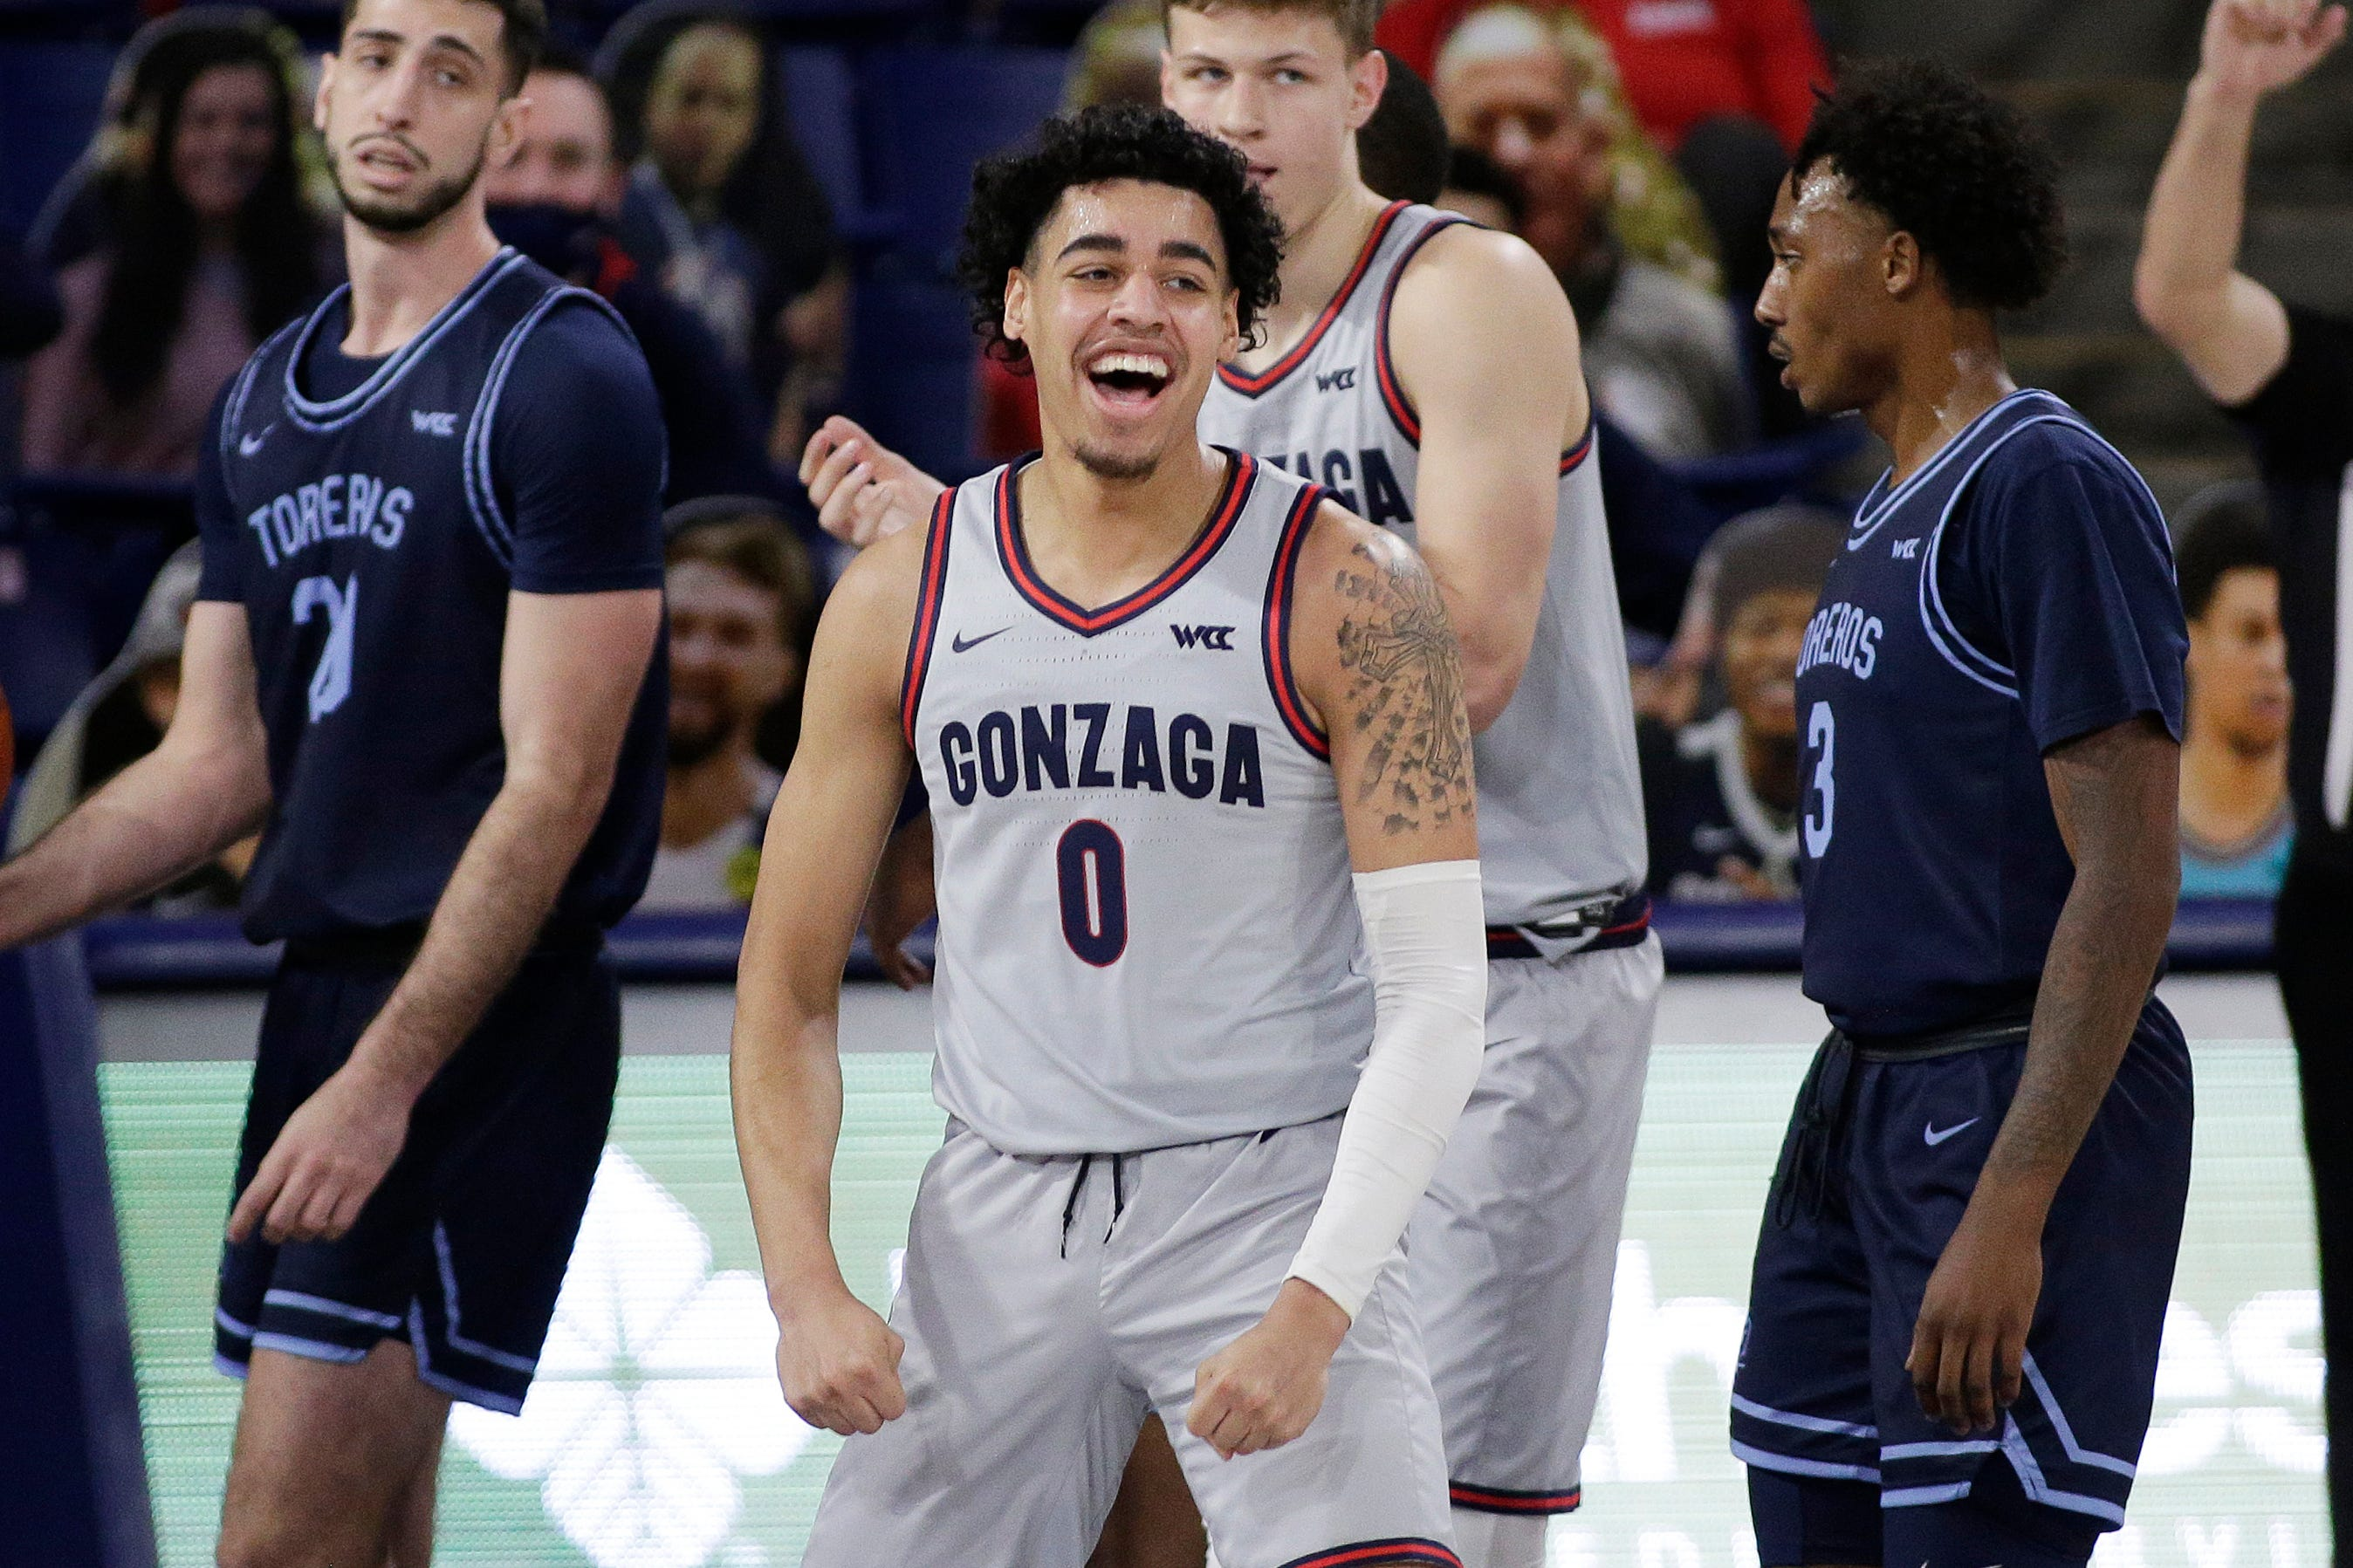 Gonzaga remains at the top of the Ferris Mowers Men's Basketball Coaches Poll